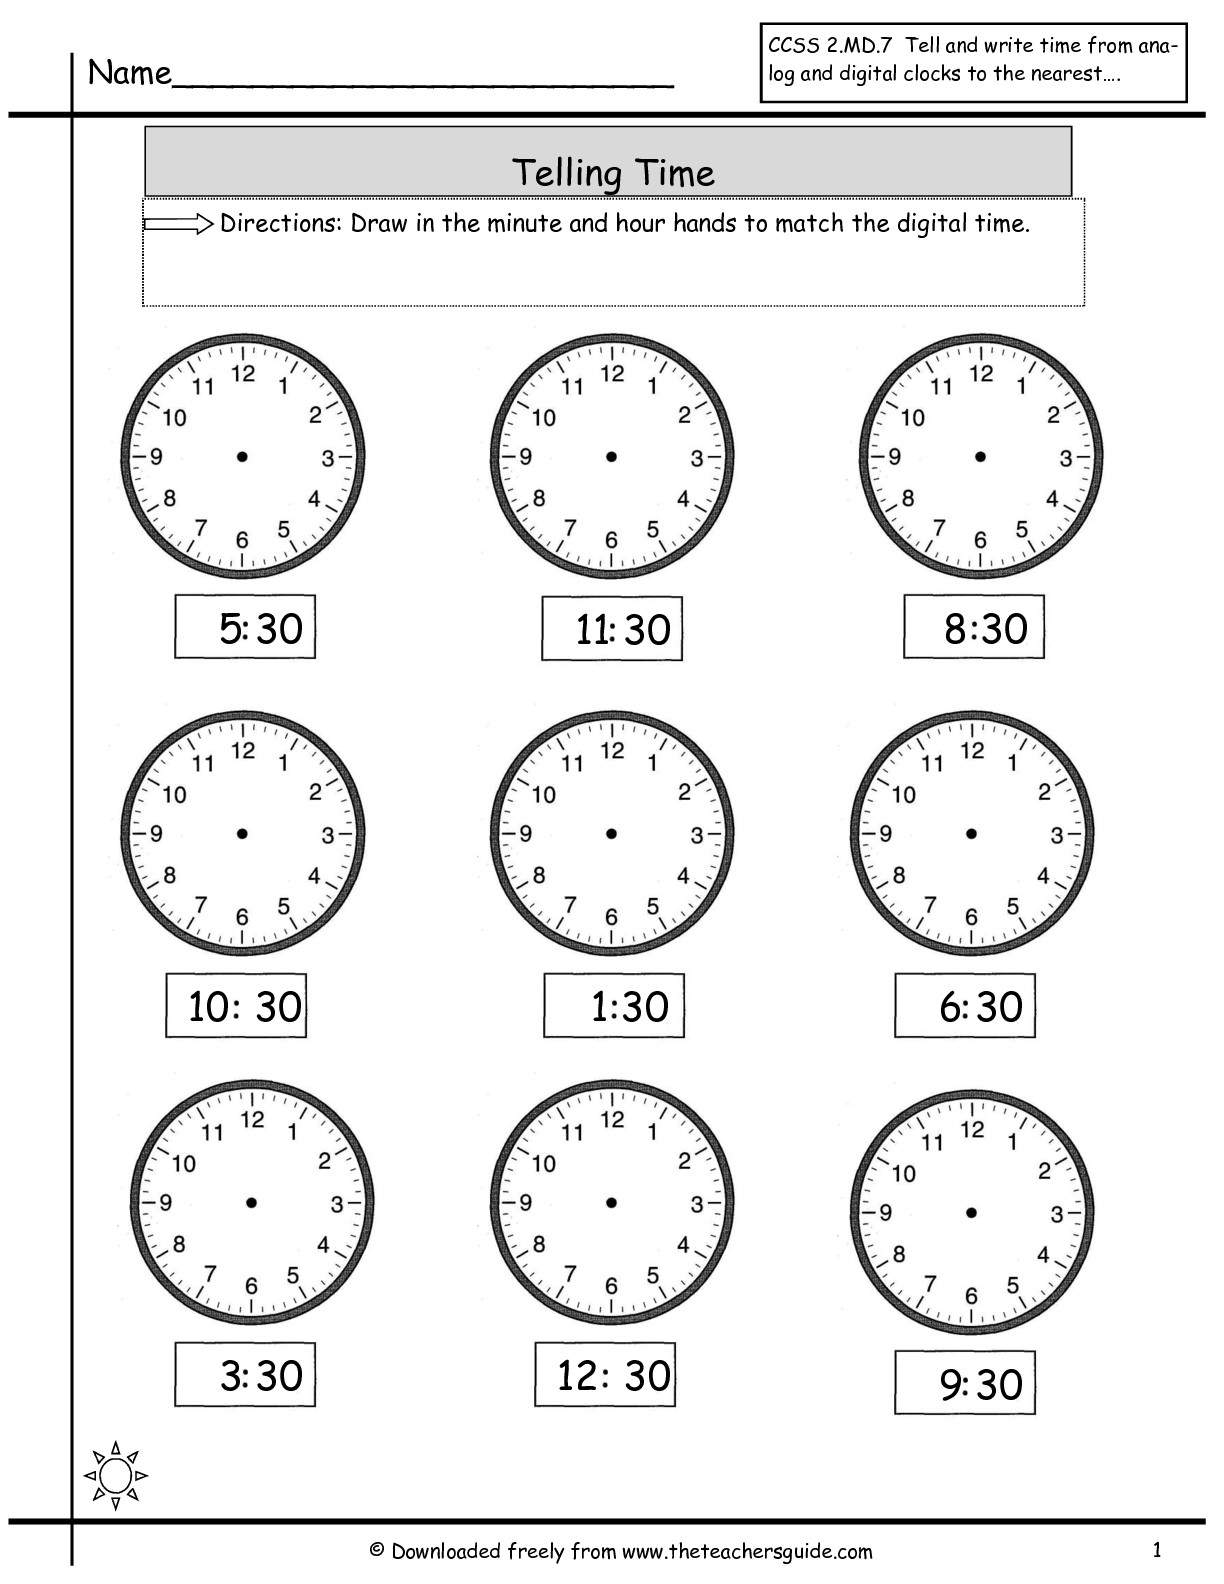 16 Best Images Of Clocks To The Nearest 5 Minutes